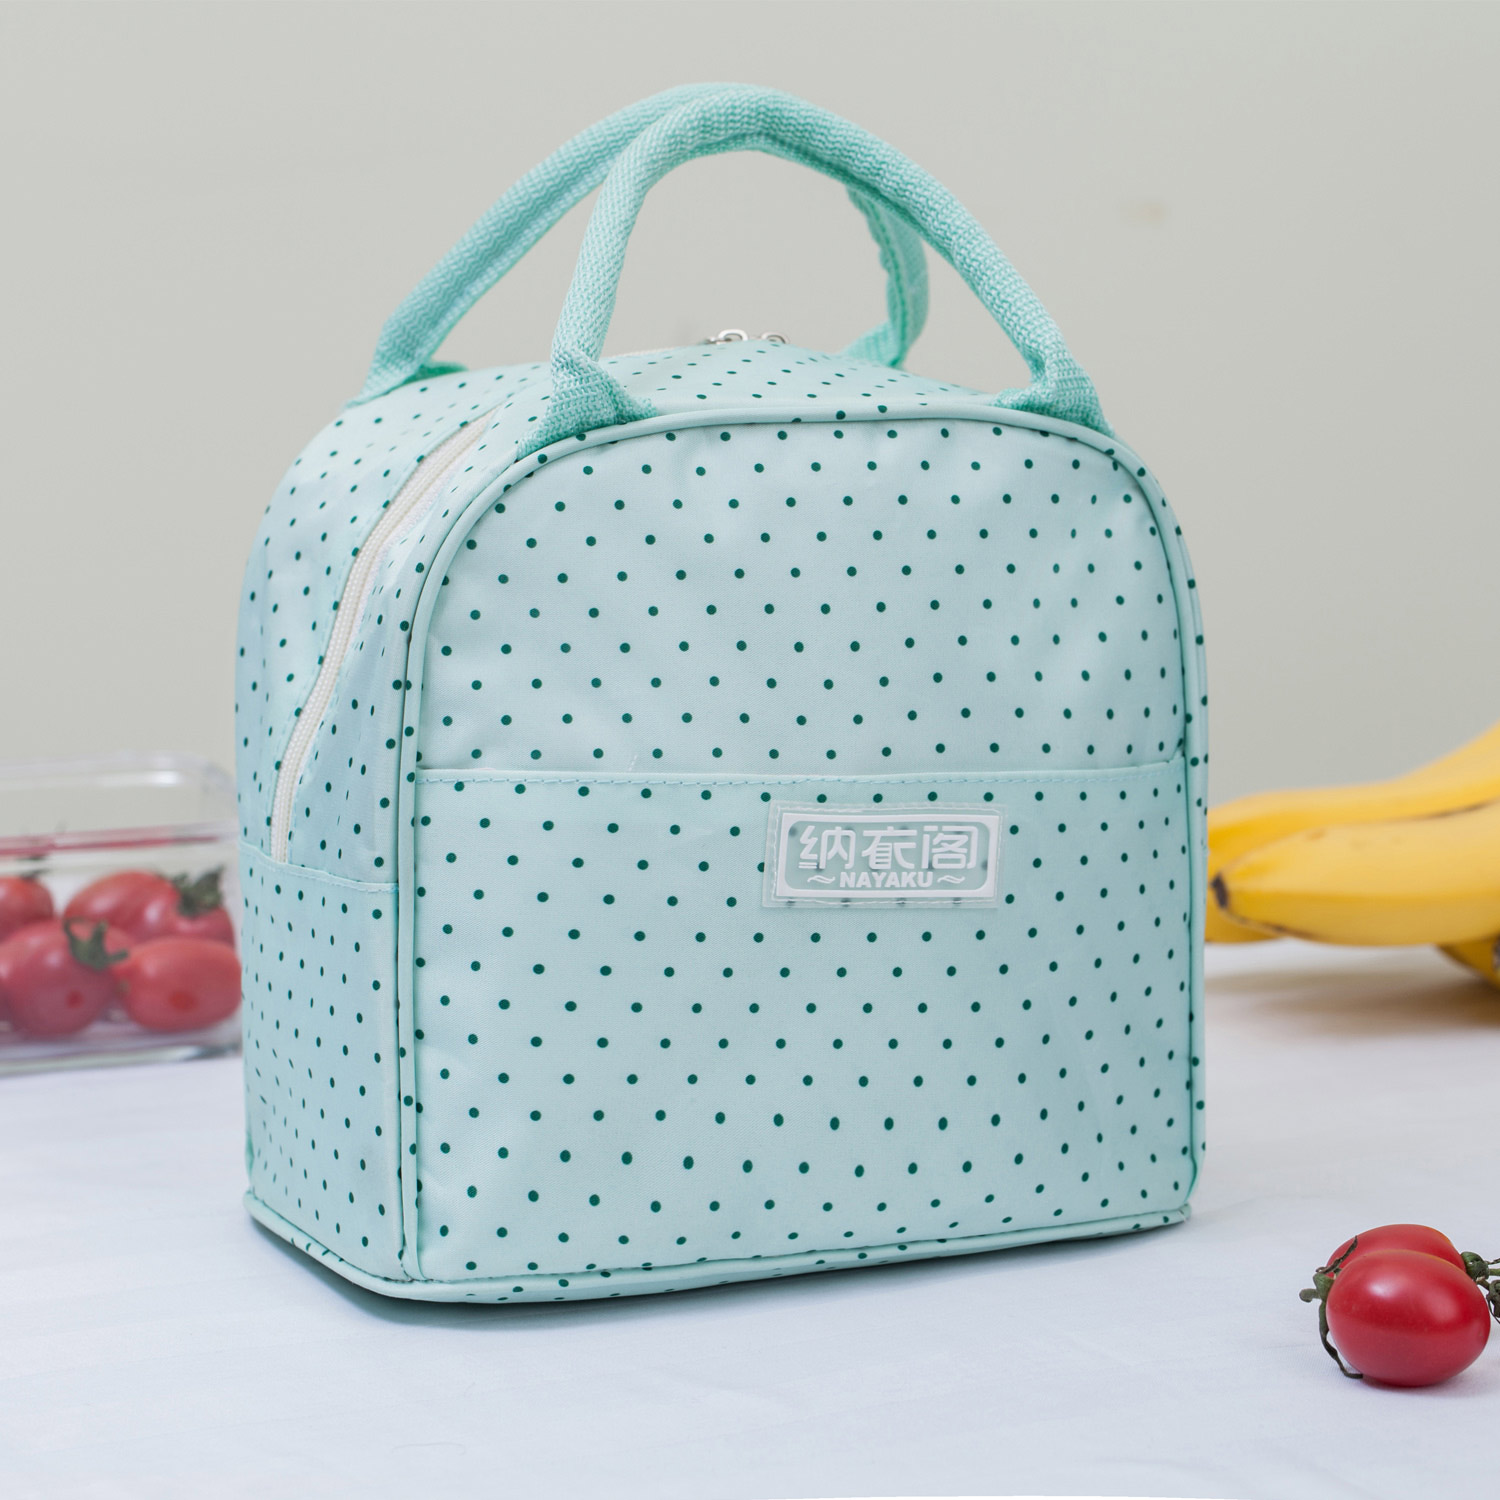 ee29eb7875 Buy Yi court is satisfied that the portable large japanese cute lunch bag  lunch bag lunch bag with rice bag lunch bag in Cheap Price on m.alibaba.com